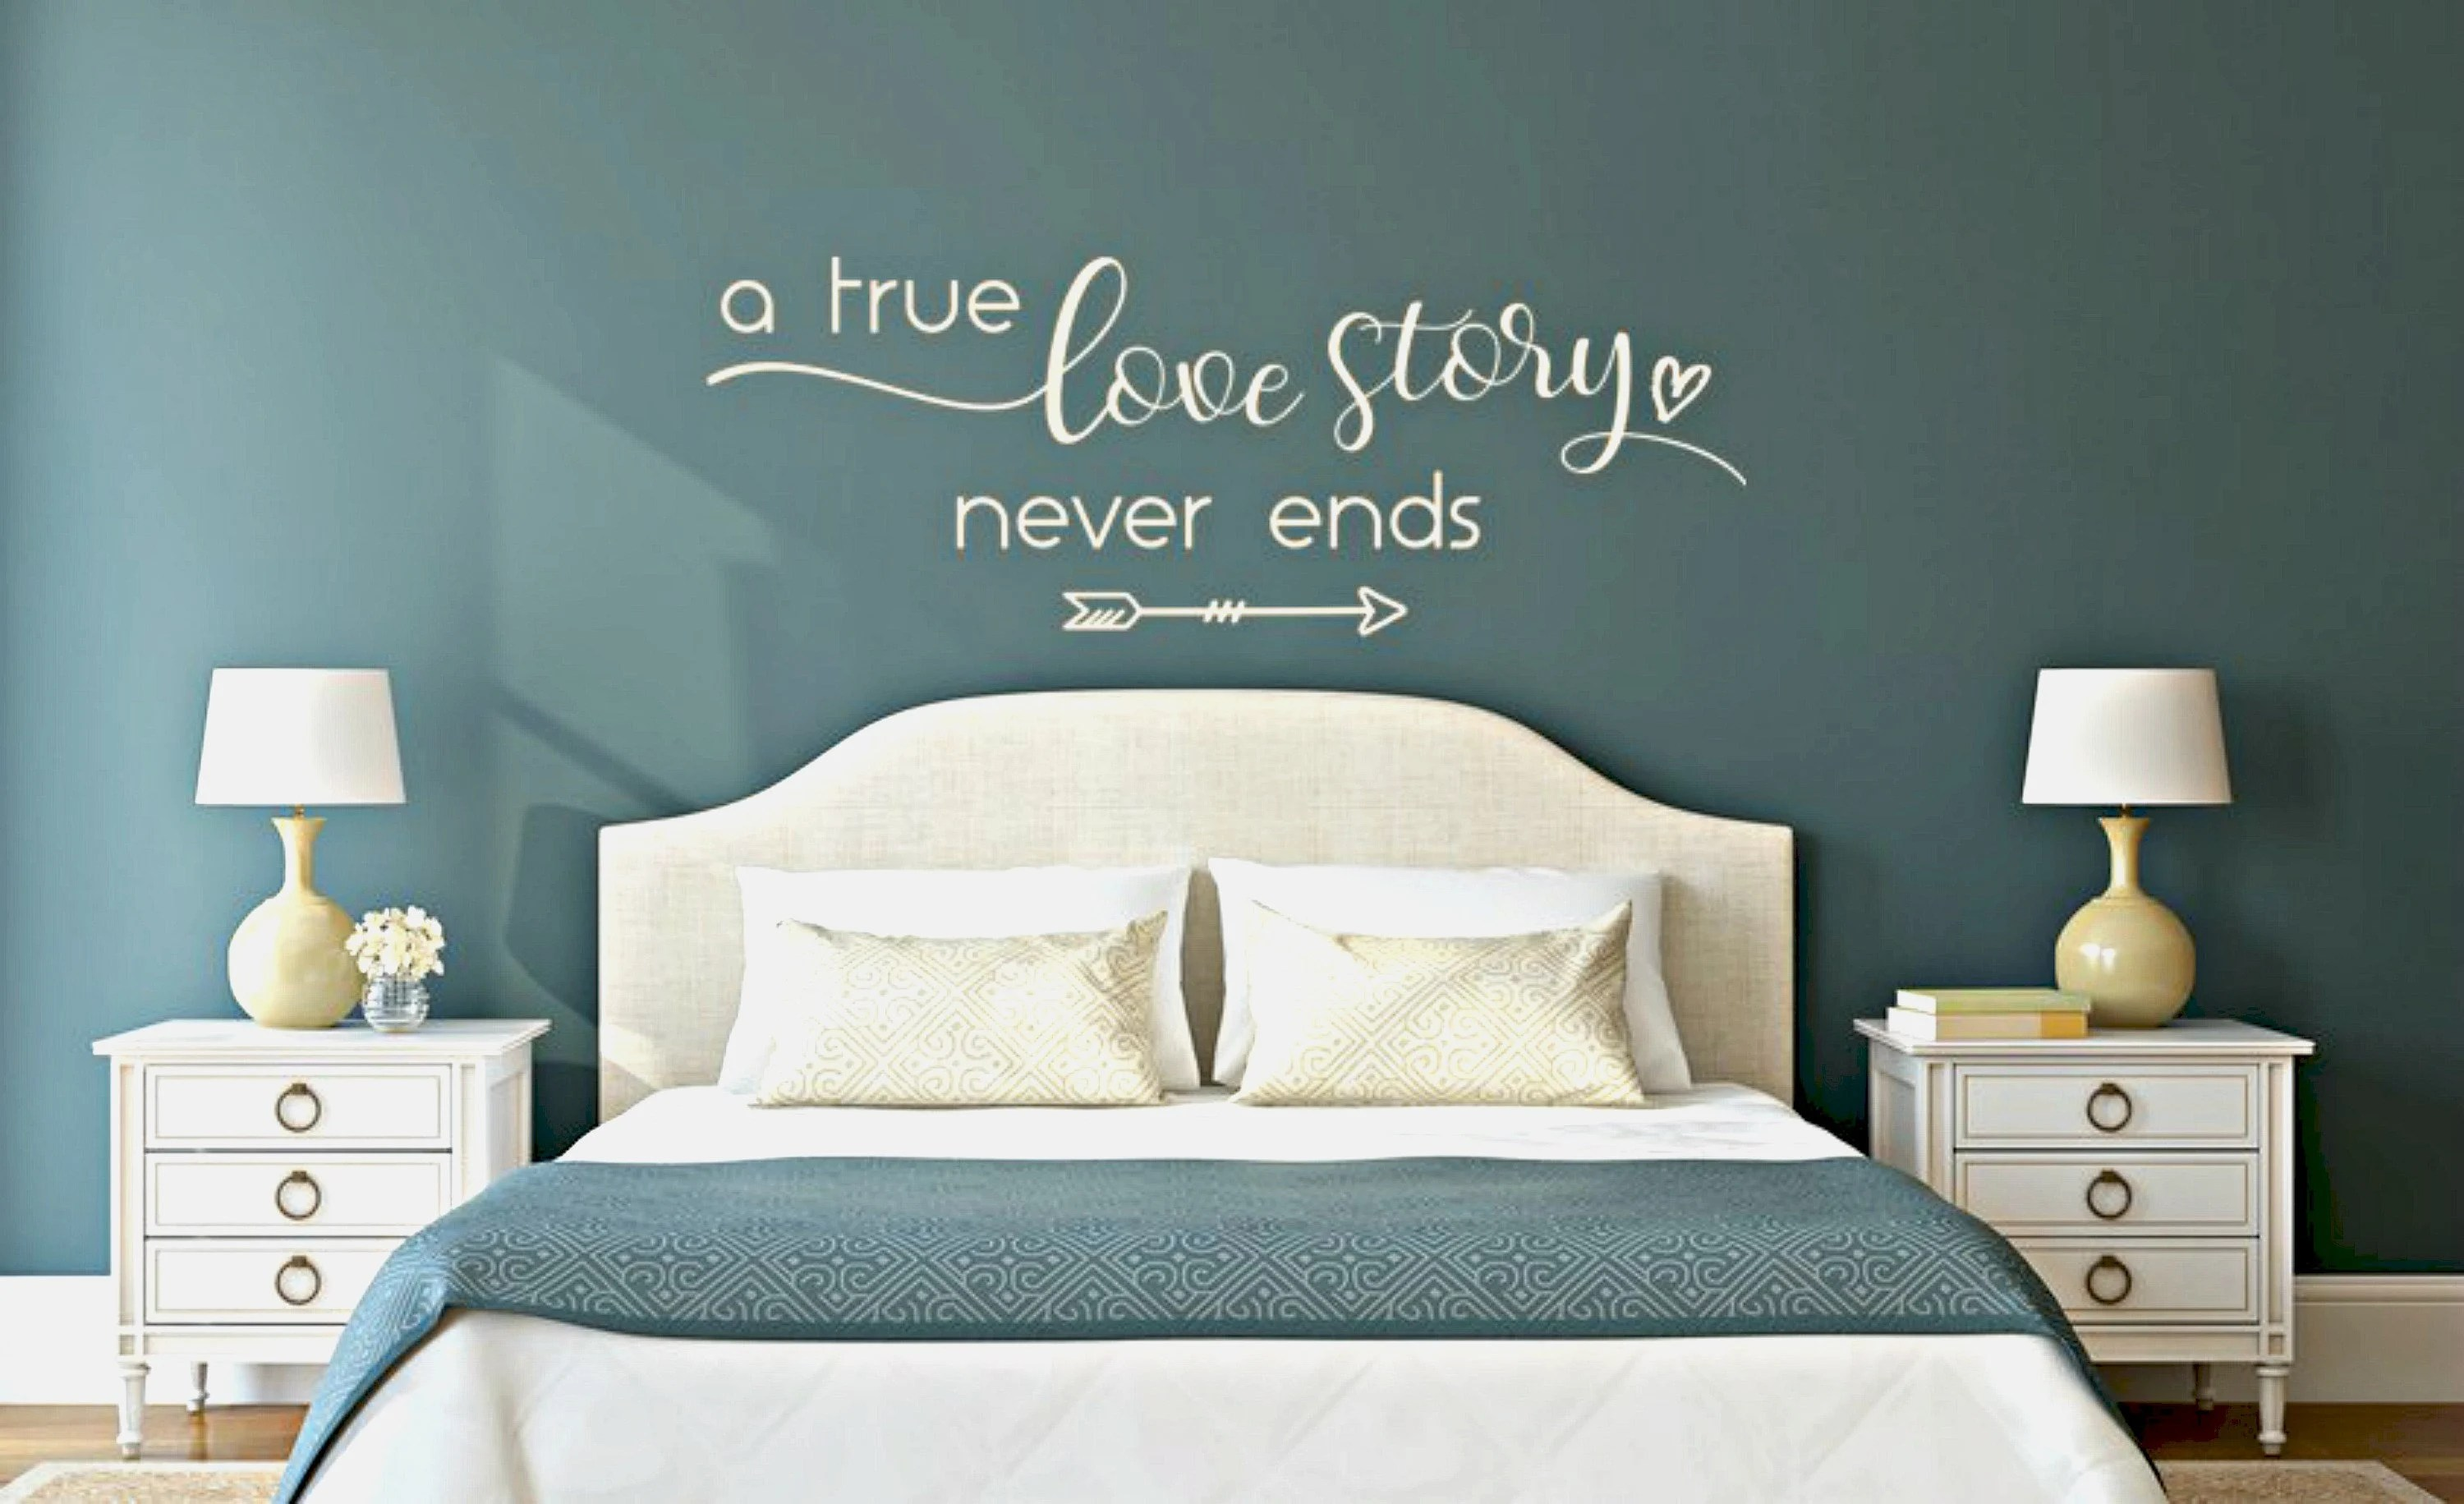 Romantic Wall Decals Master Bedroom Vinyl Love Story Decal Etsy ...